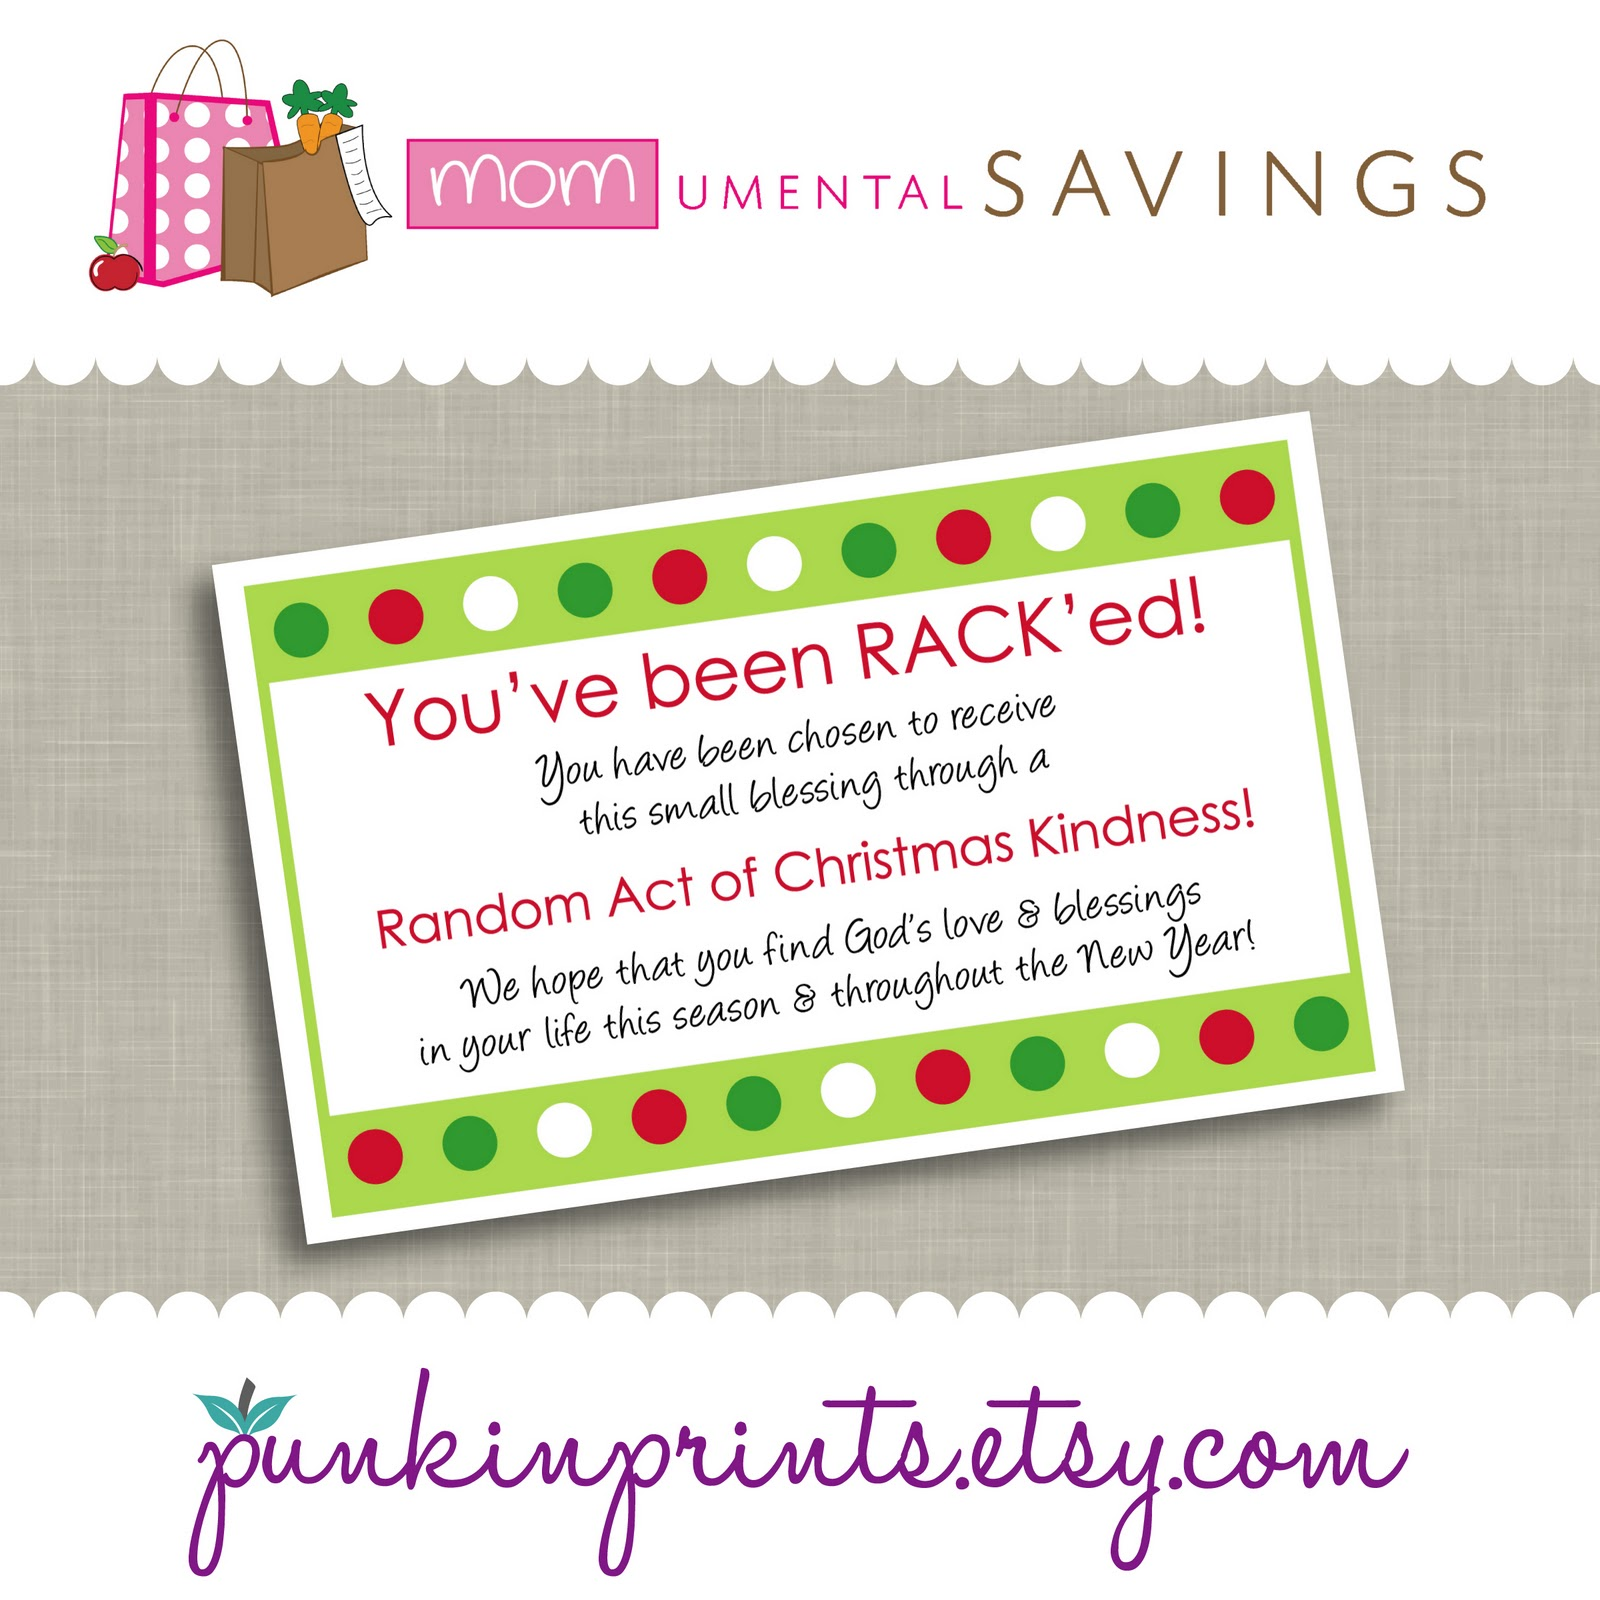 MOMumental Savings: Random Acts of Christmas Kindness